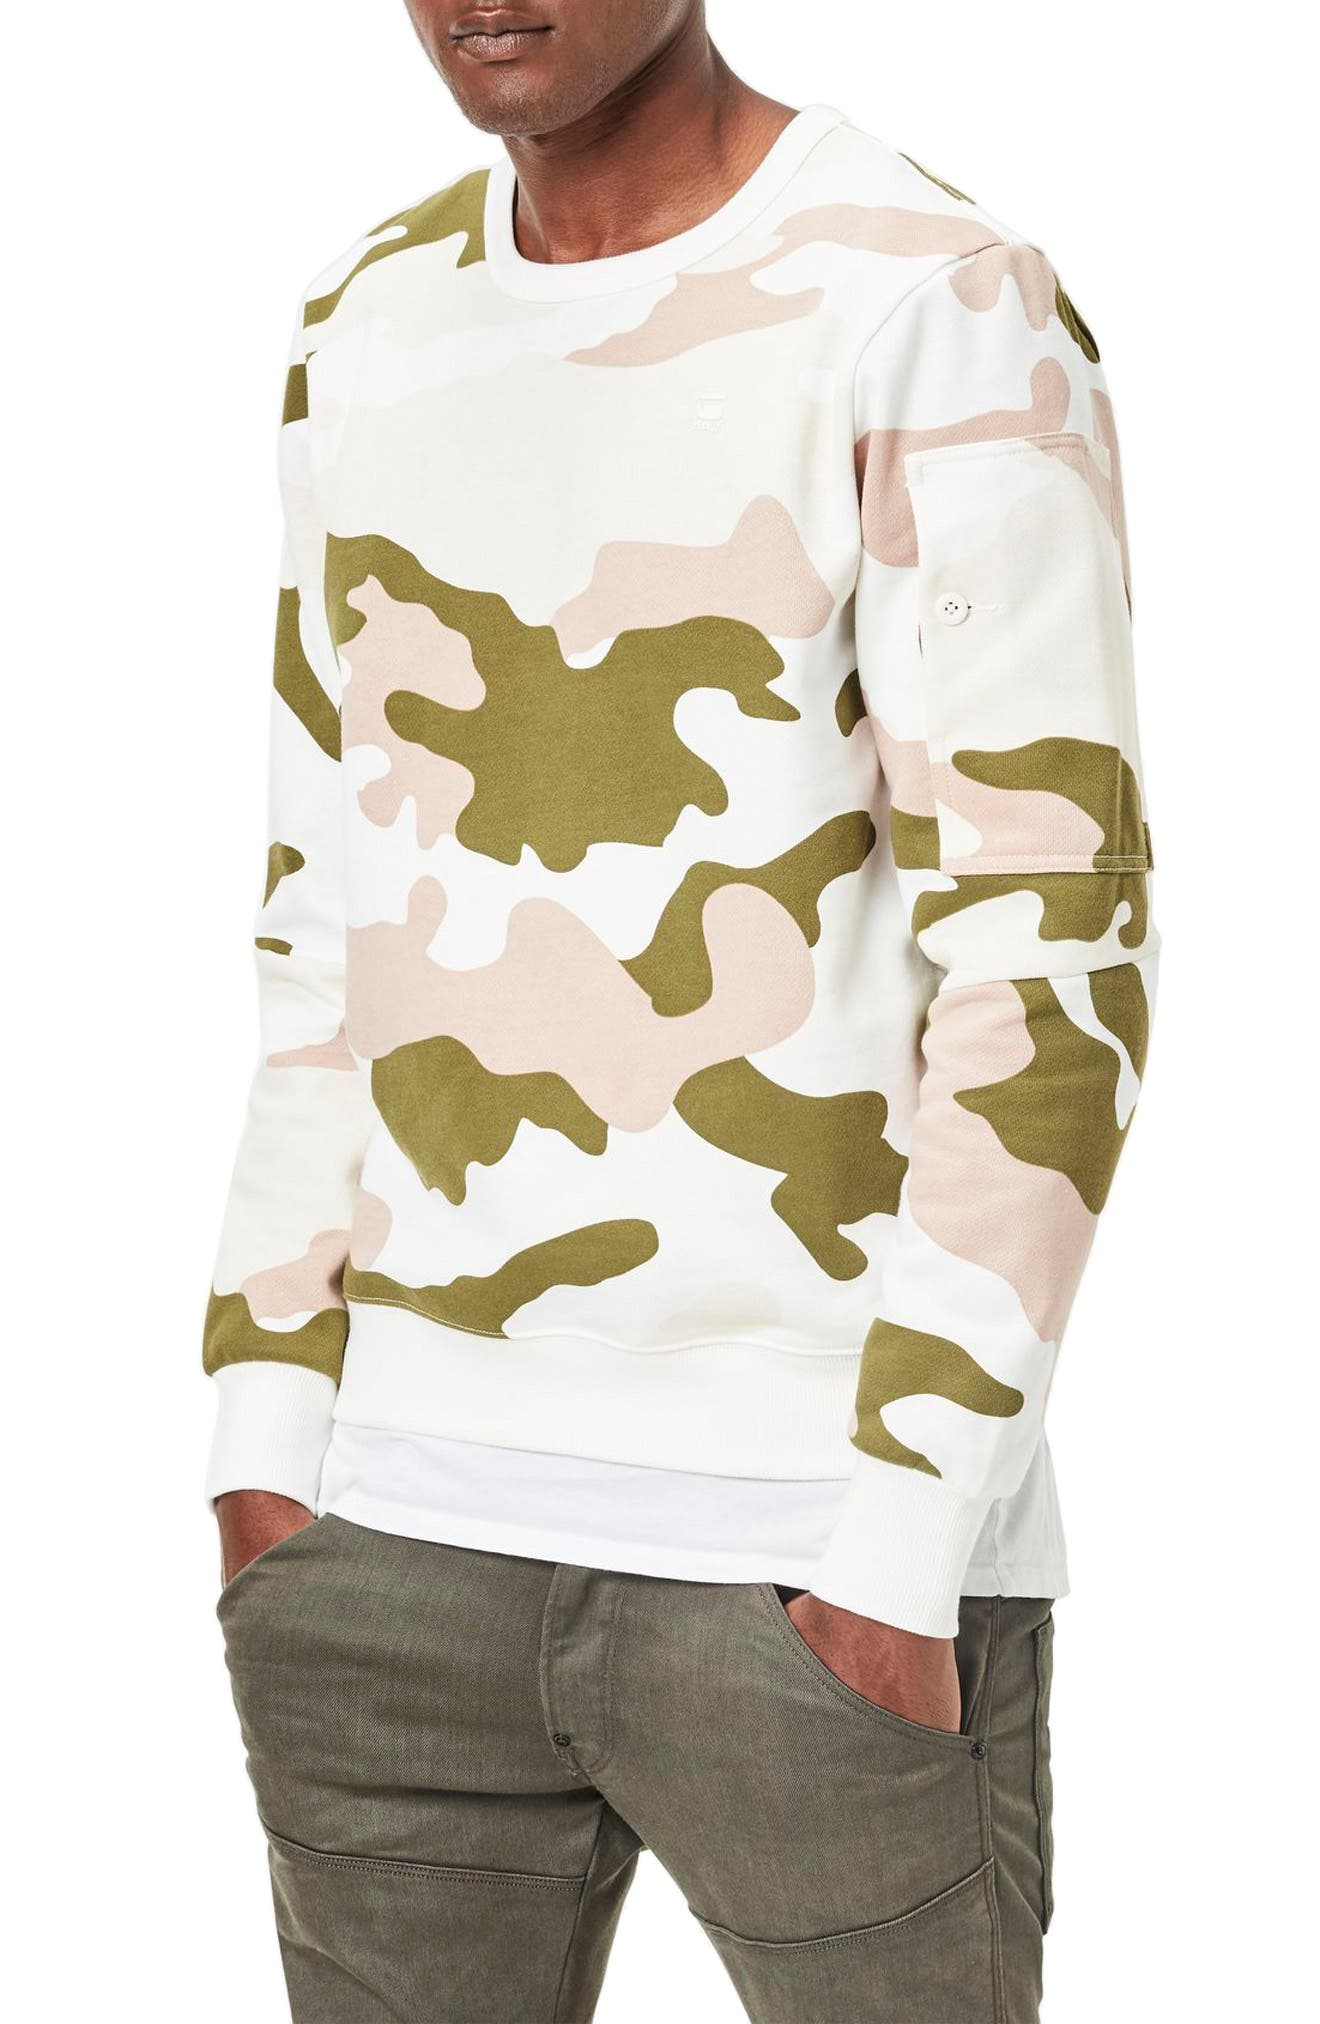 Stalt Camo Sweatshirt,                         Main,                         color, Milk/ Marble